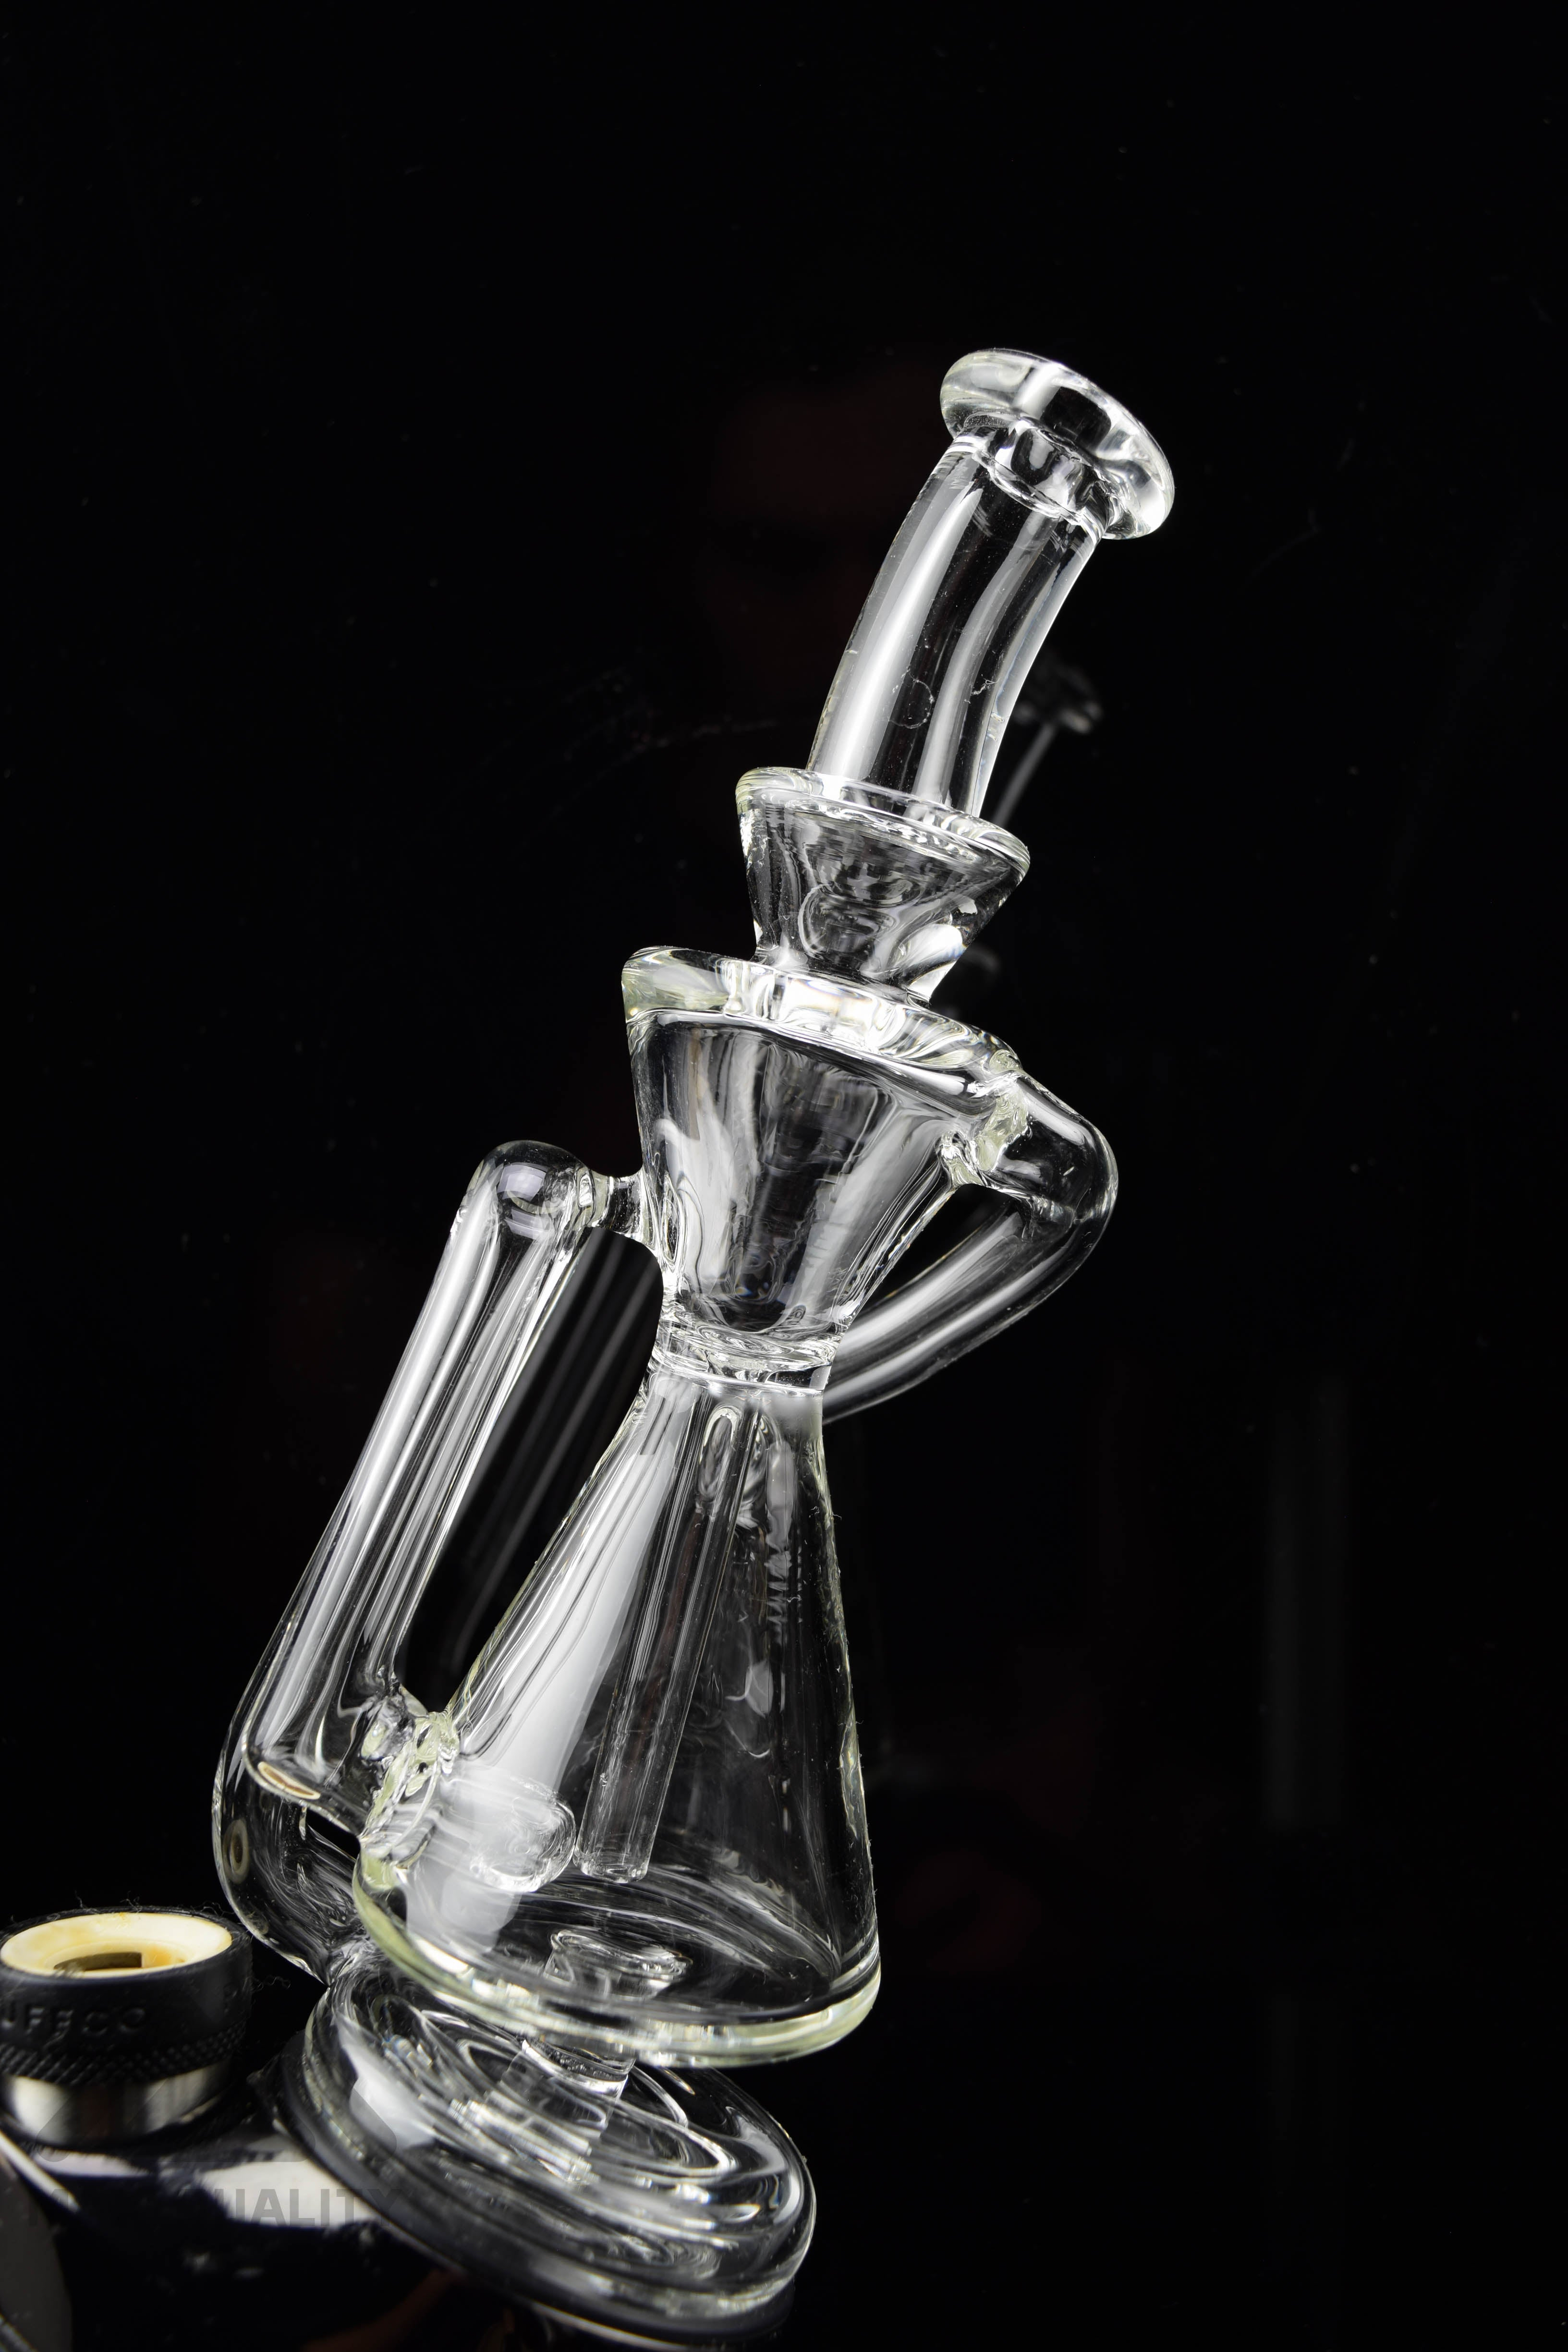 Puffco Recycler Attachment